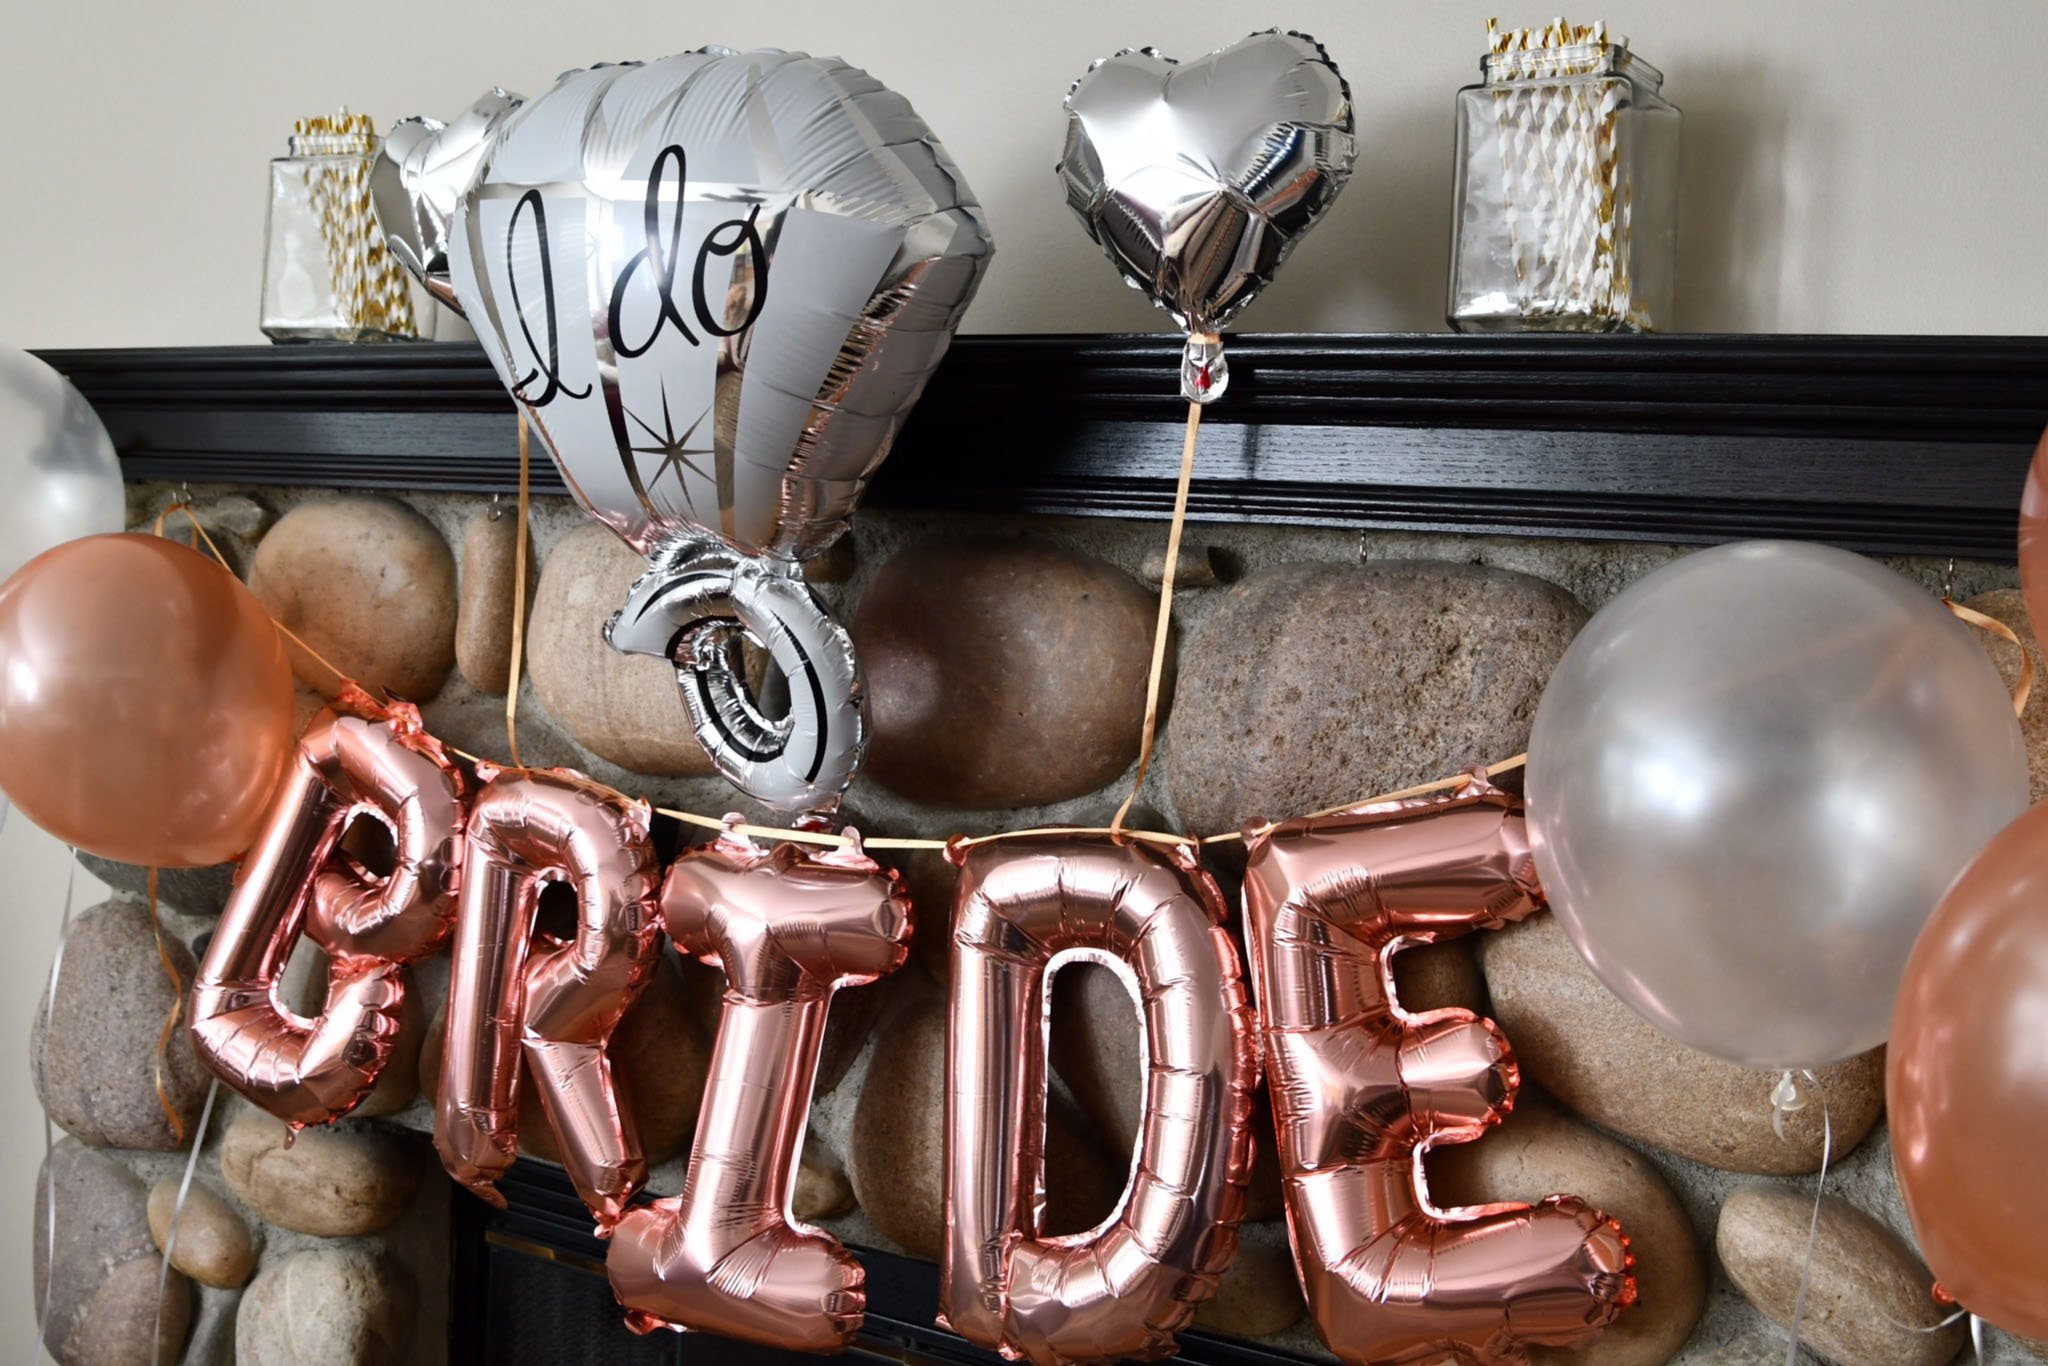 Bachelorette Party Decorations Pack - Rose Gold Party Supply Kit with Rose Gold, White Pearl and Silver Heart Balloons + Rose Gold Straws + The Bride Sash + Bride Foil Banner and Diamond Ring Balloon by Party Simple (Image #4)